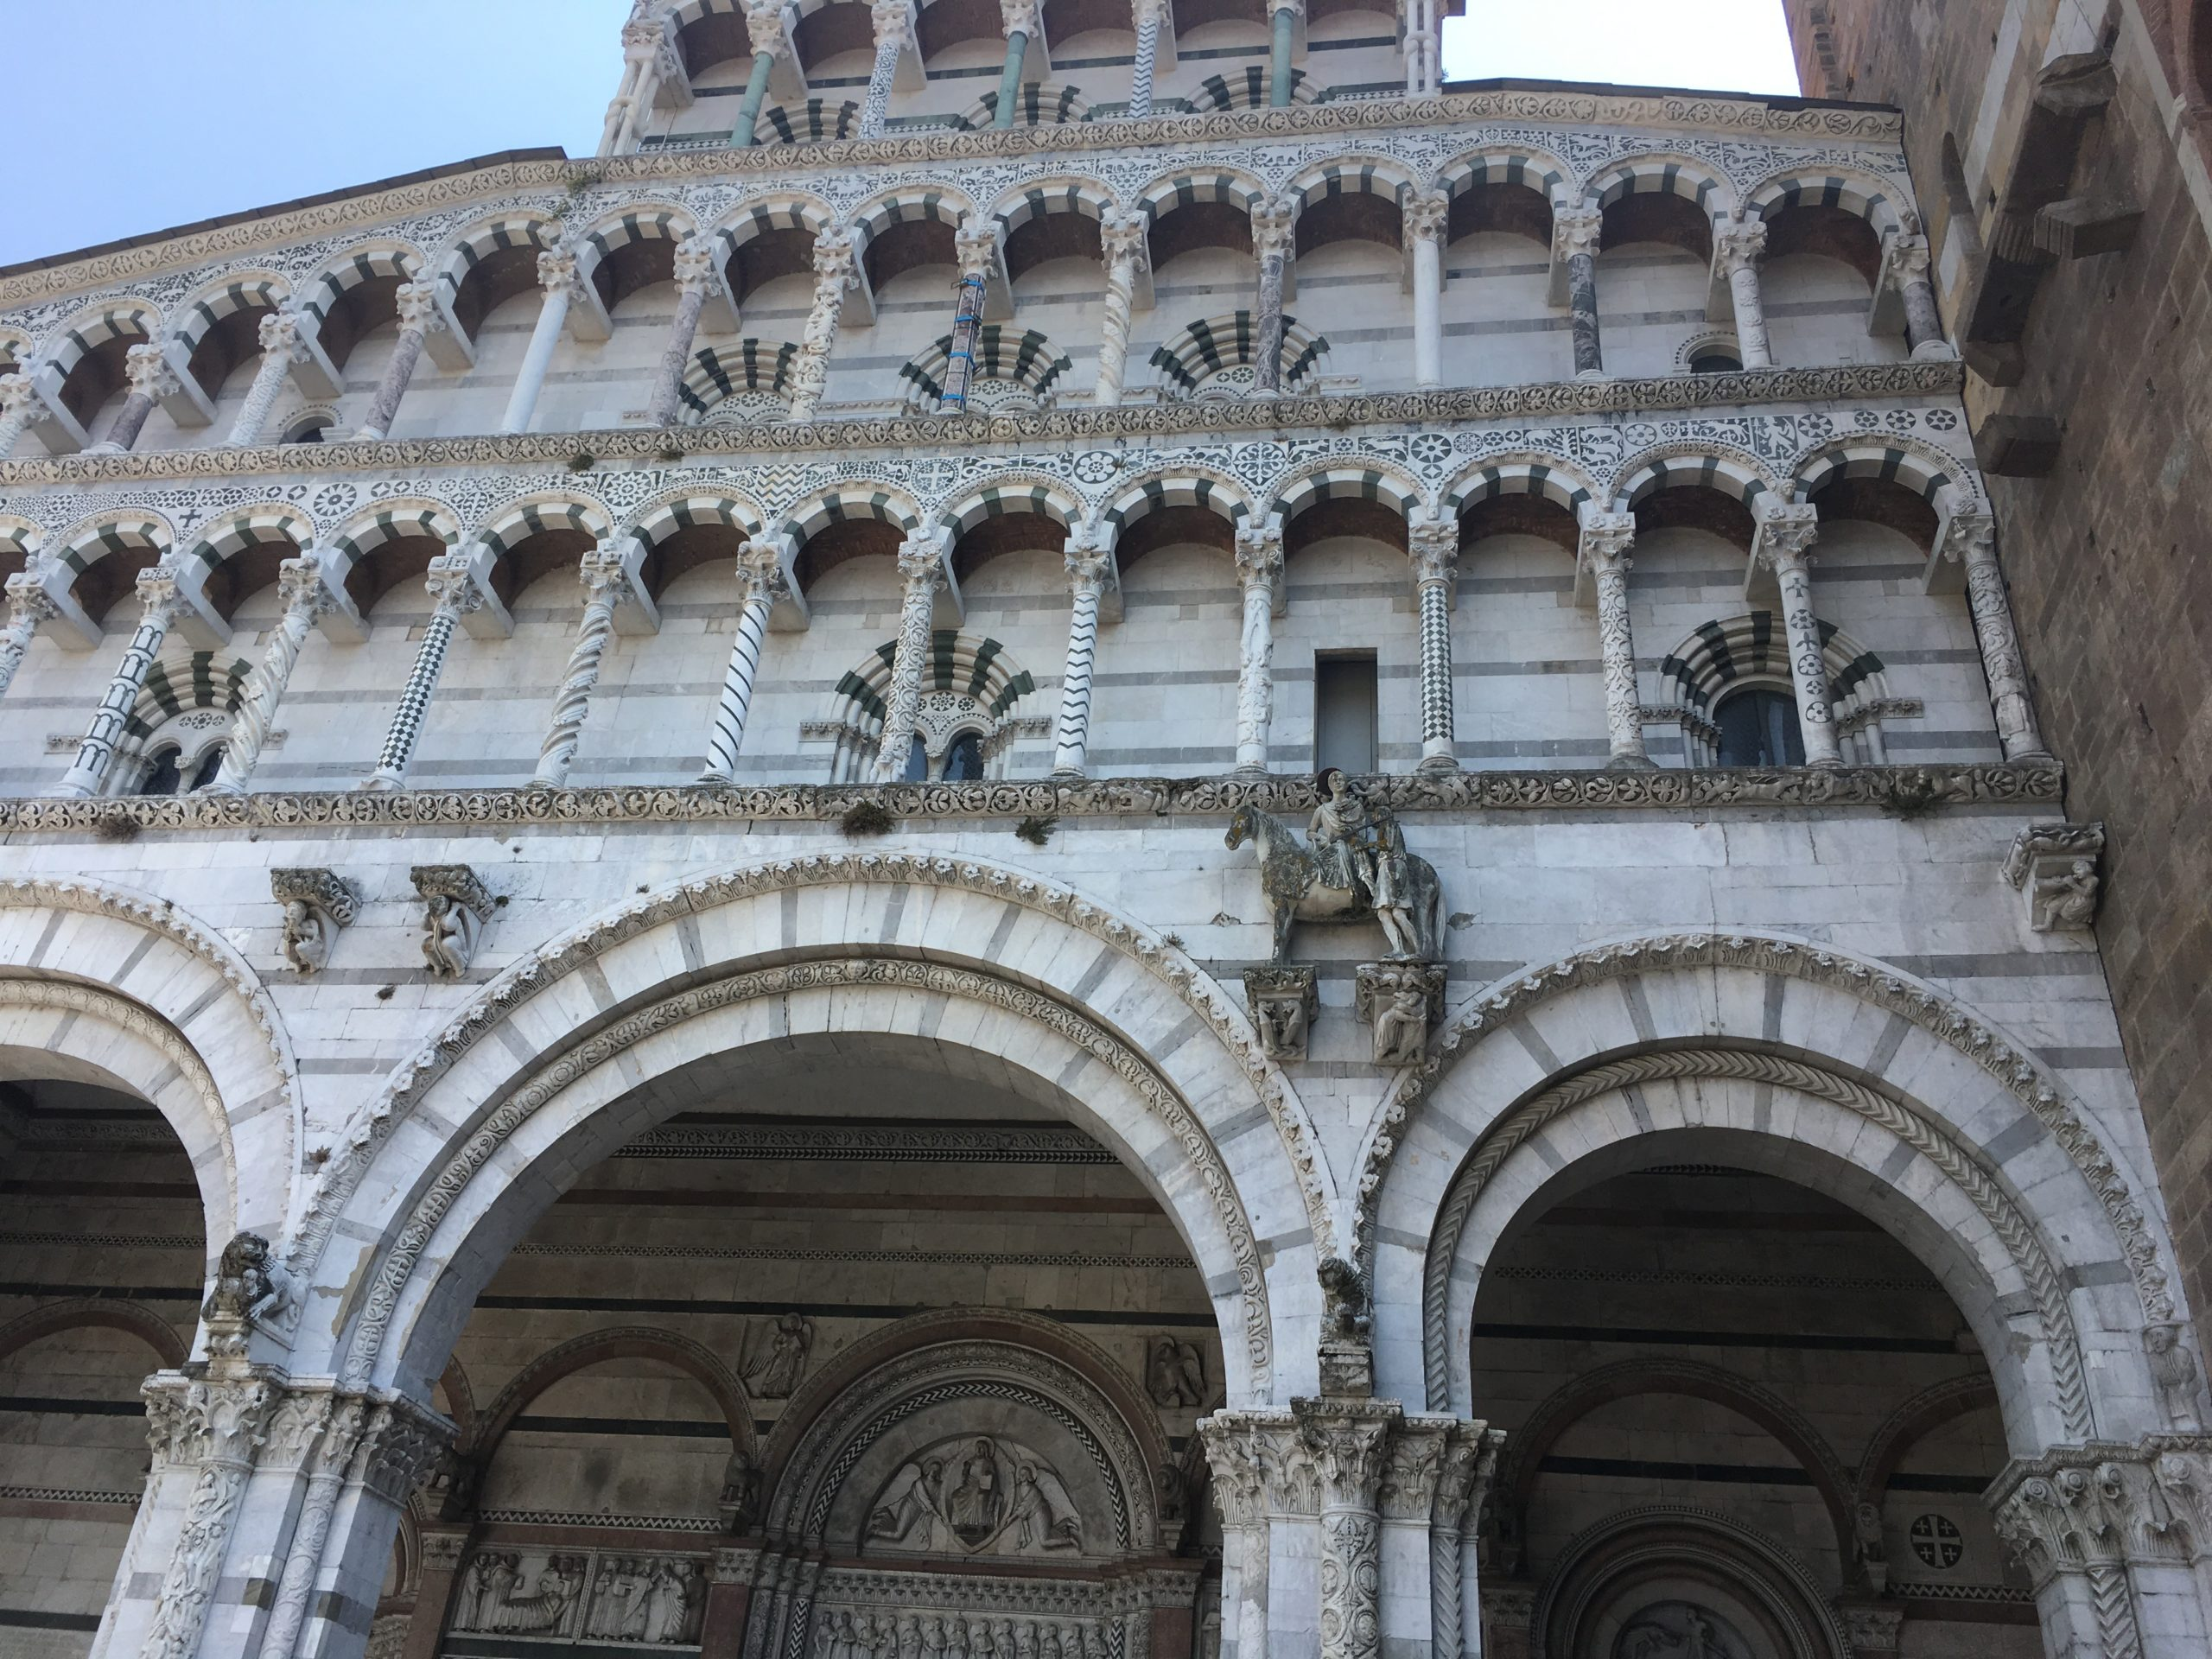 Facade of the cathedral of Lucca